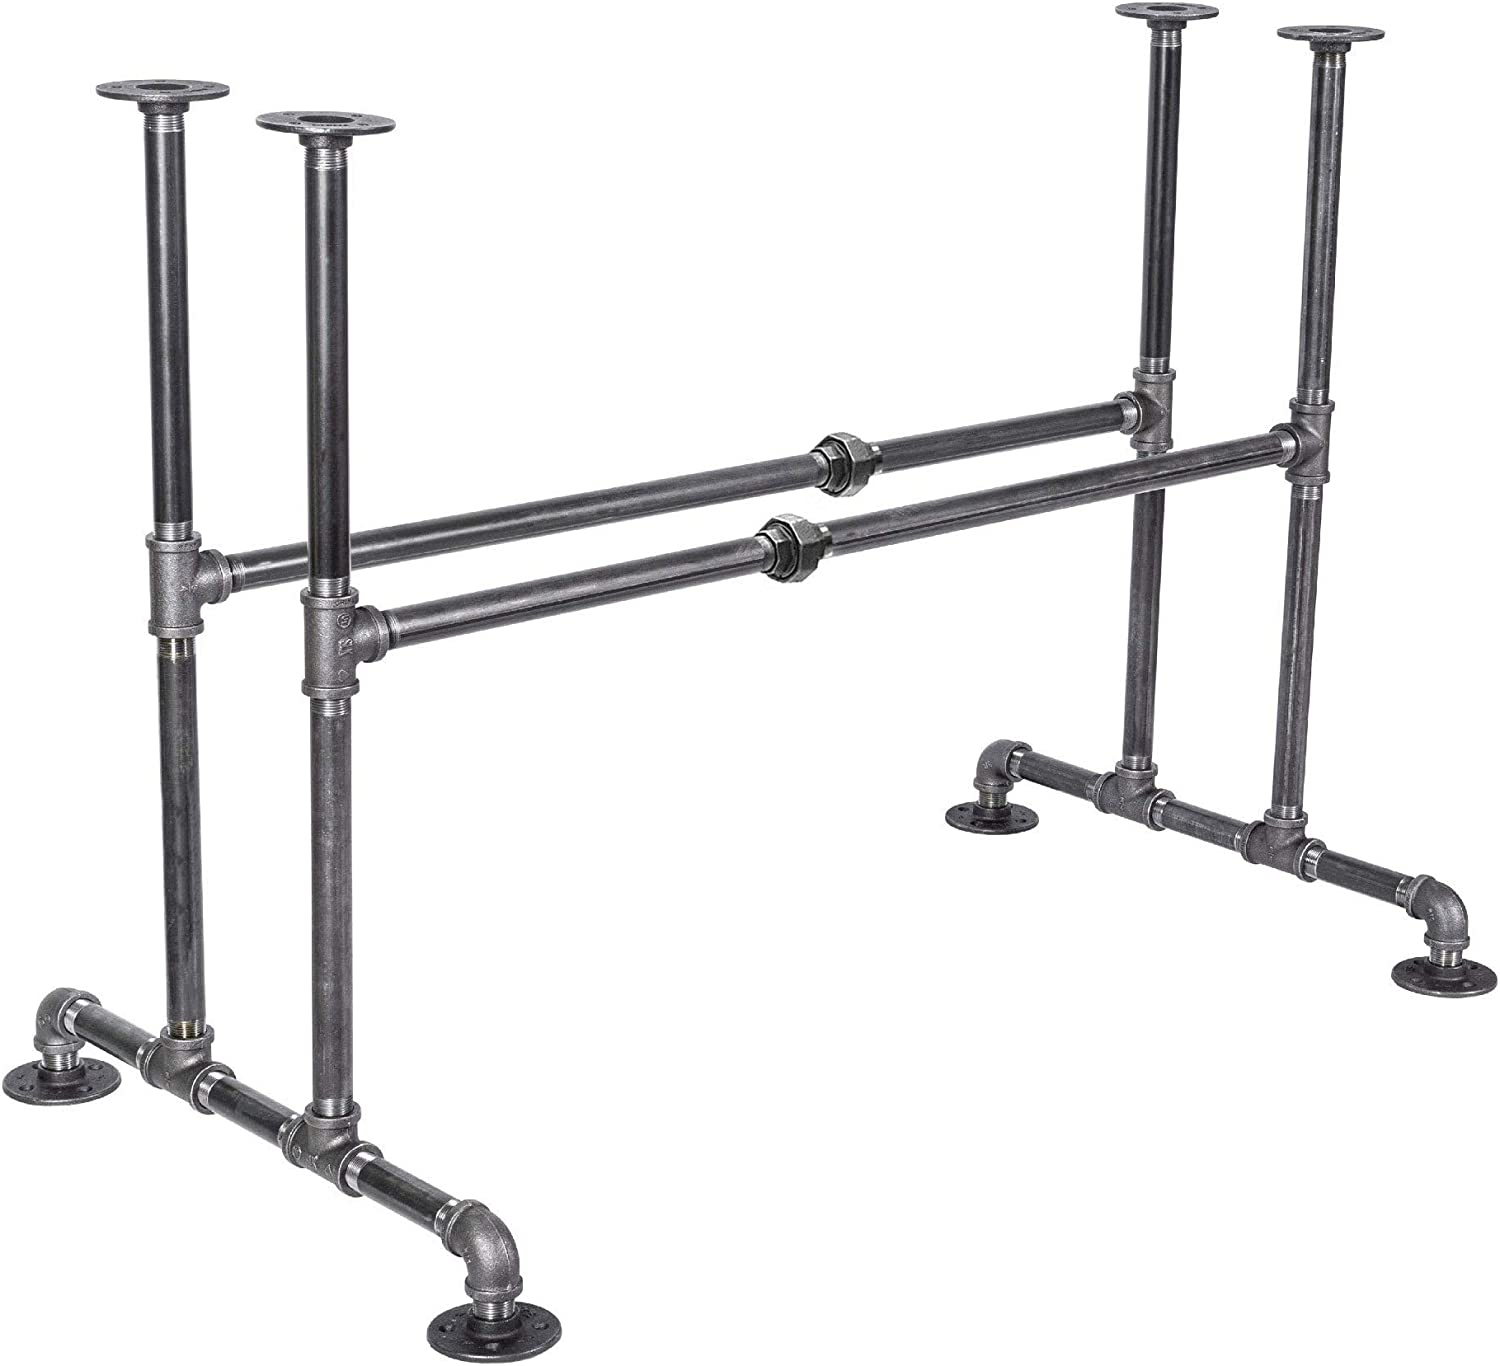 """PIPE DÉCOR Industrial Table Rustic Pipe Kitchen Metal Frame 3/4 Inch Pipe Base 30"""" Height Sturdy Simple Table Base for Home Office, Basement, Study, Bridge Design"""